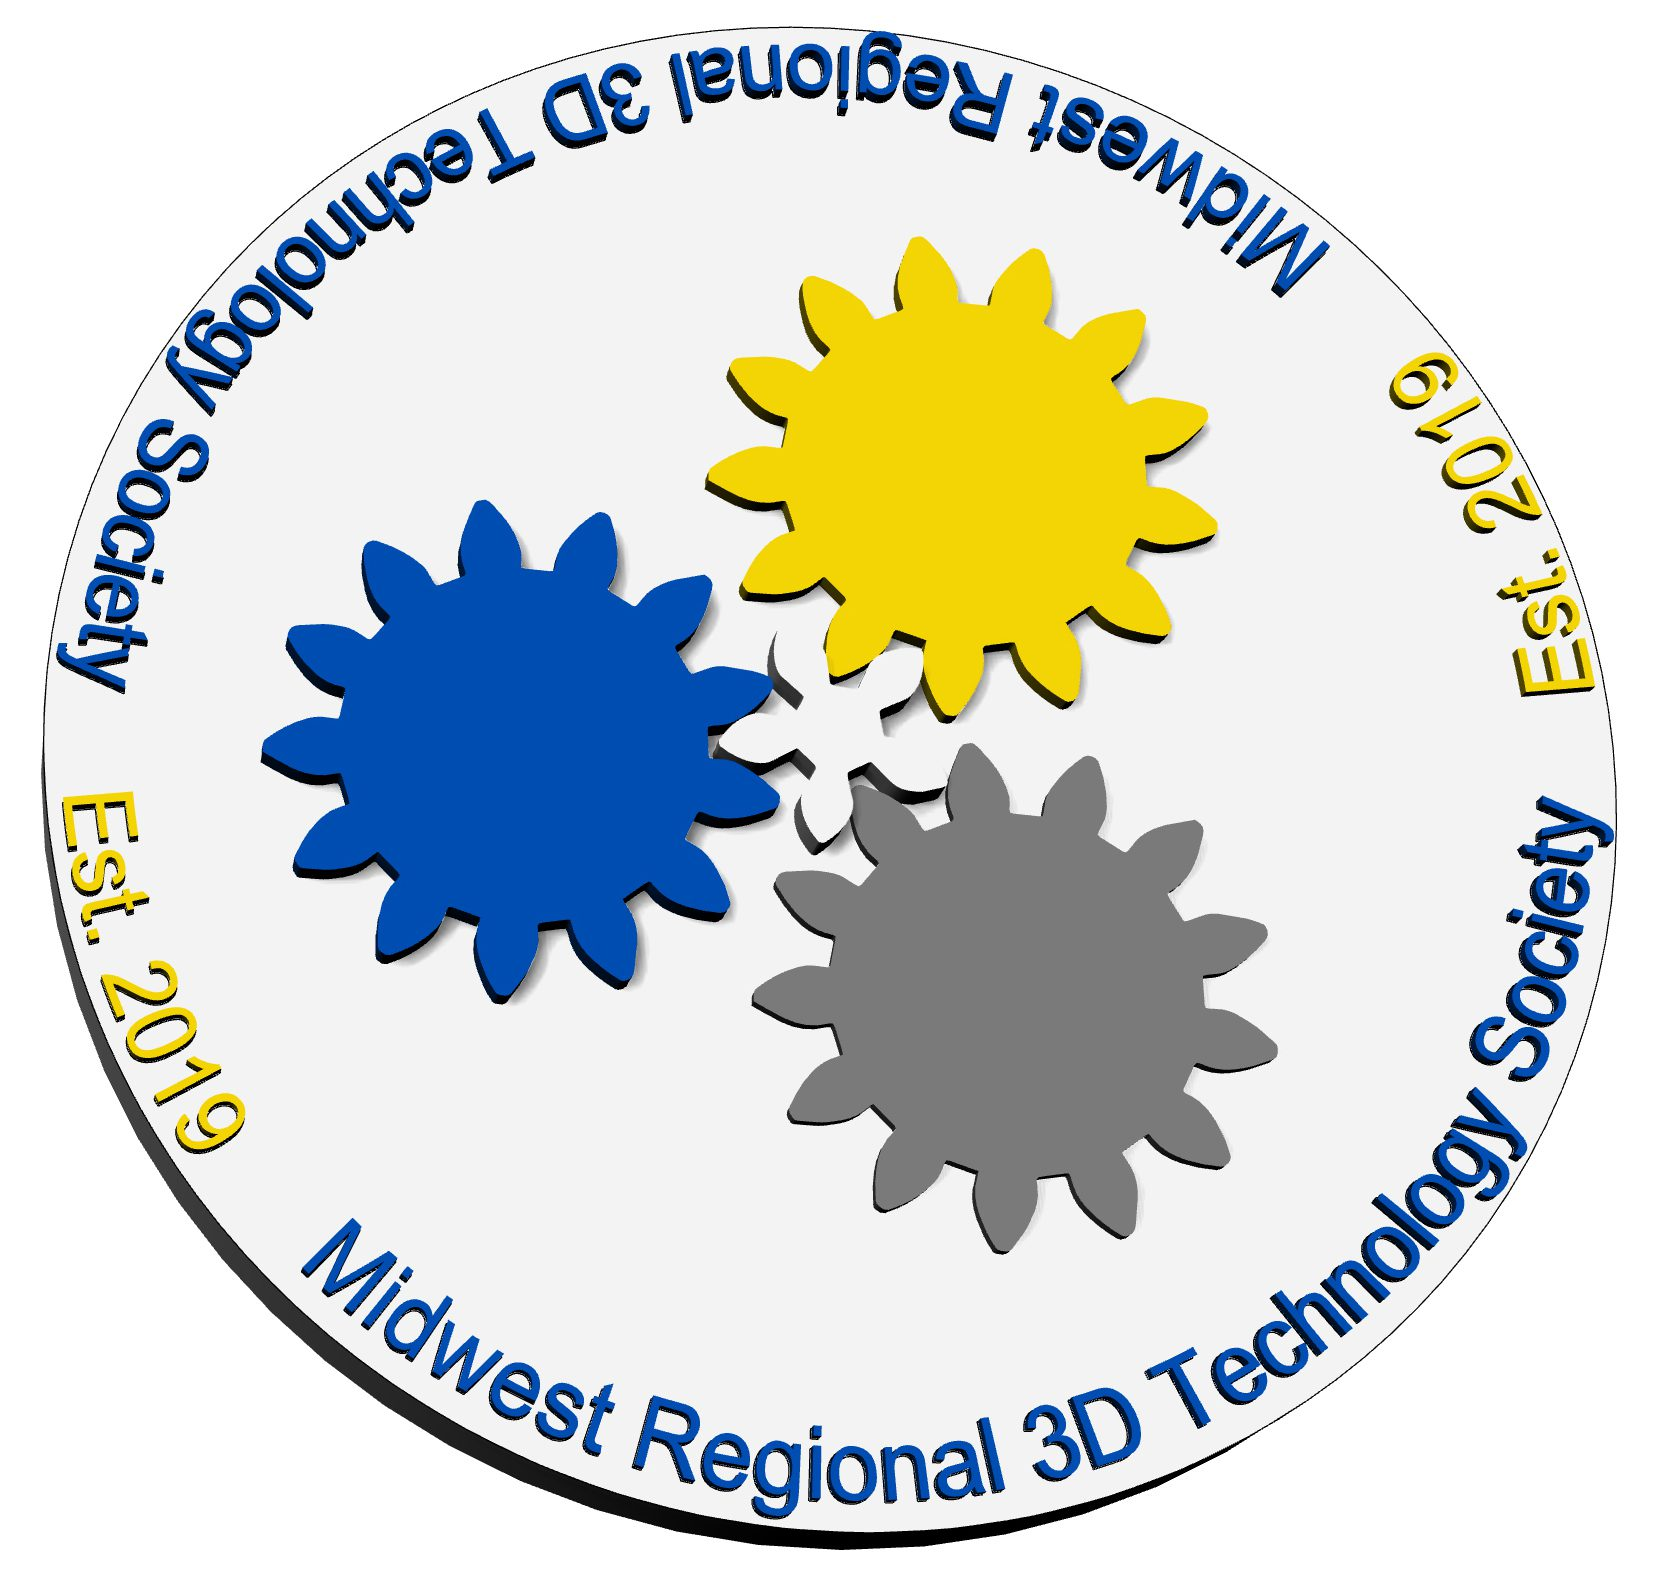 Midwest Regional 3D Tech Society 21